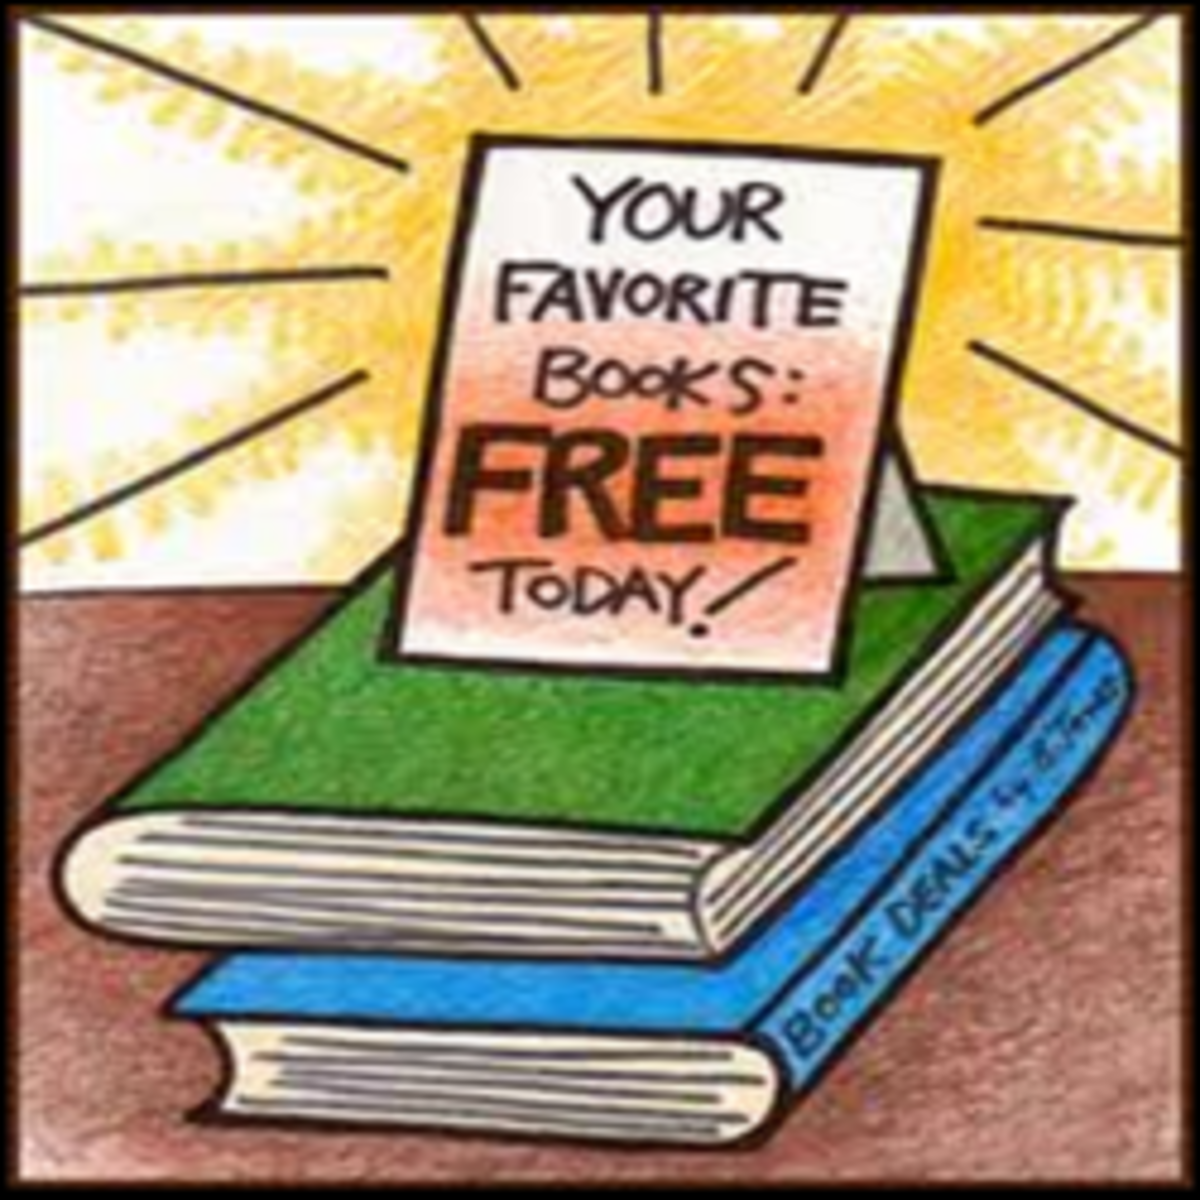 the-best-of-amazon-daily-free-ebooks-kindle-ipad